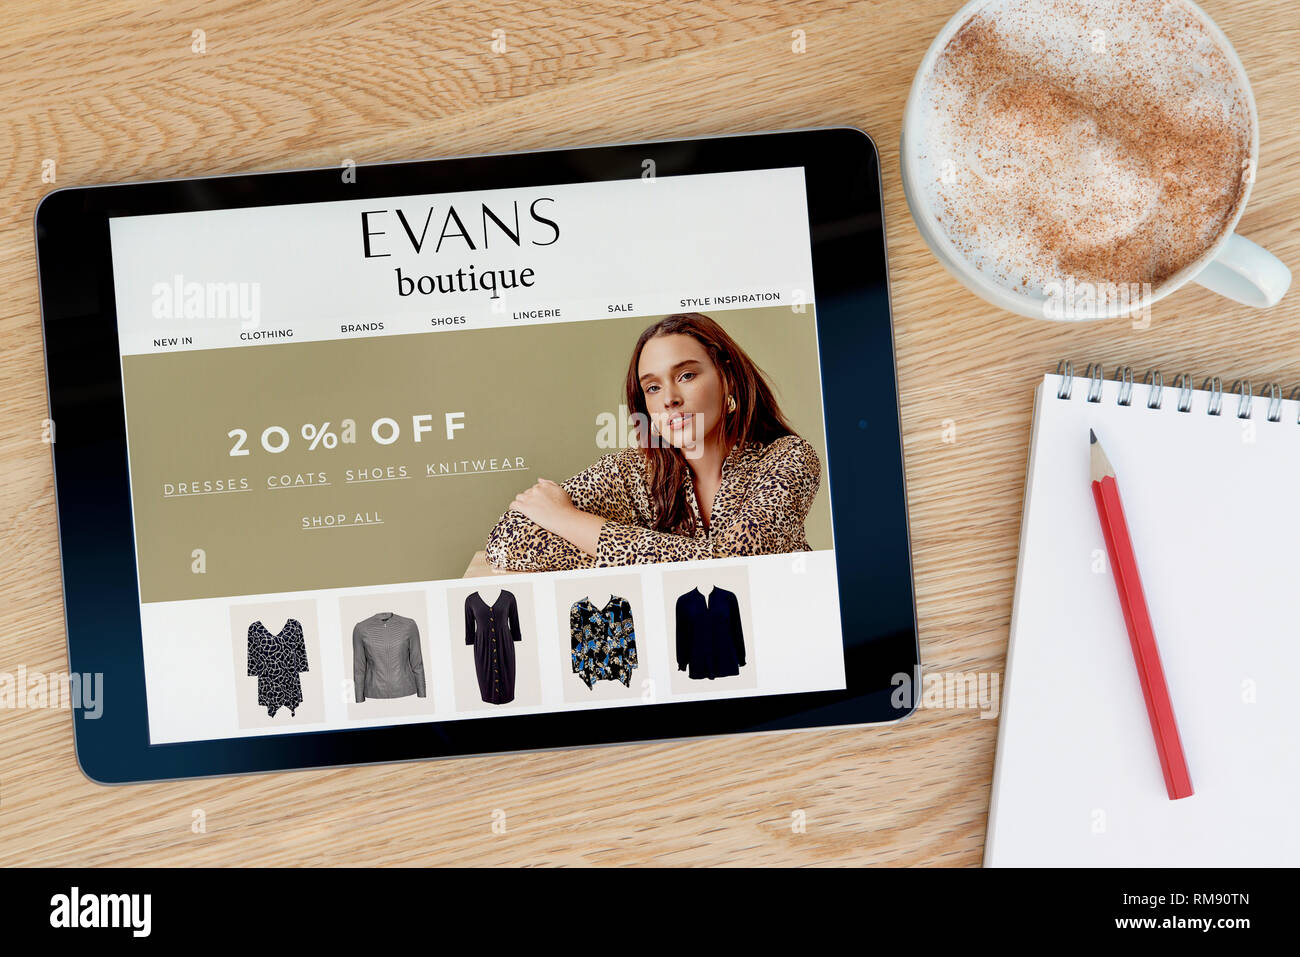 The Evans Boutique website features on an iPad tablet device which rests on a wooden table beside a notepad (Editorial use only). - Stock Image